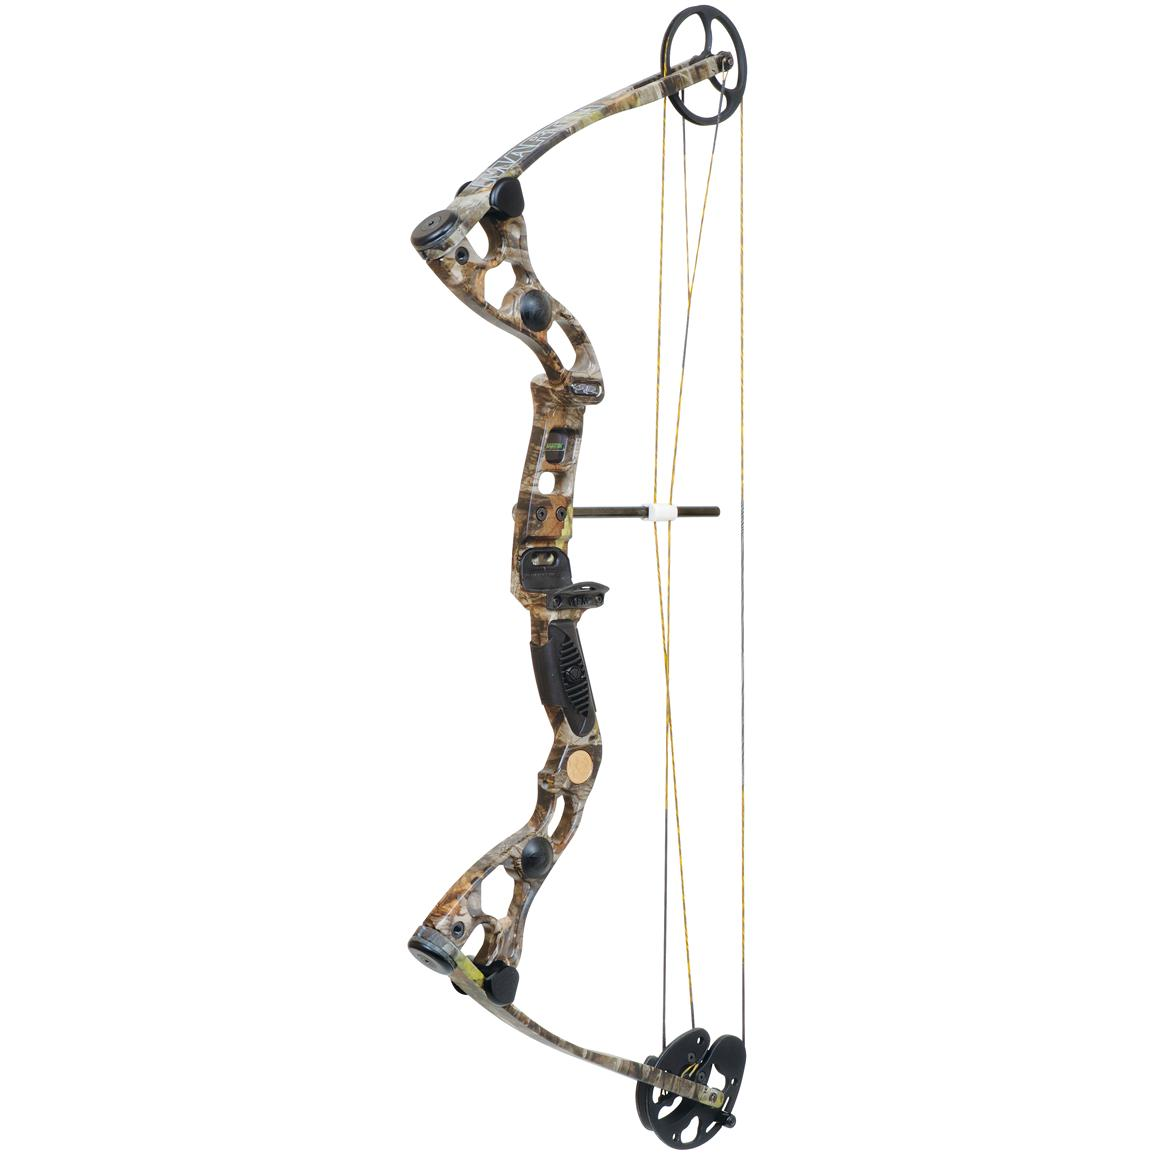 Martin Archery® Leopard MAG A1.5 Right Hand Compound Bow